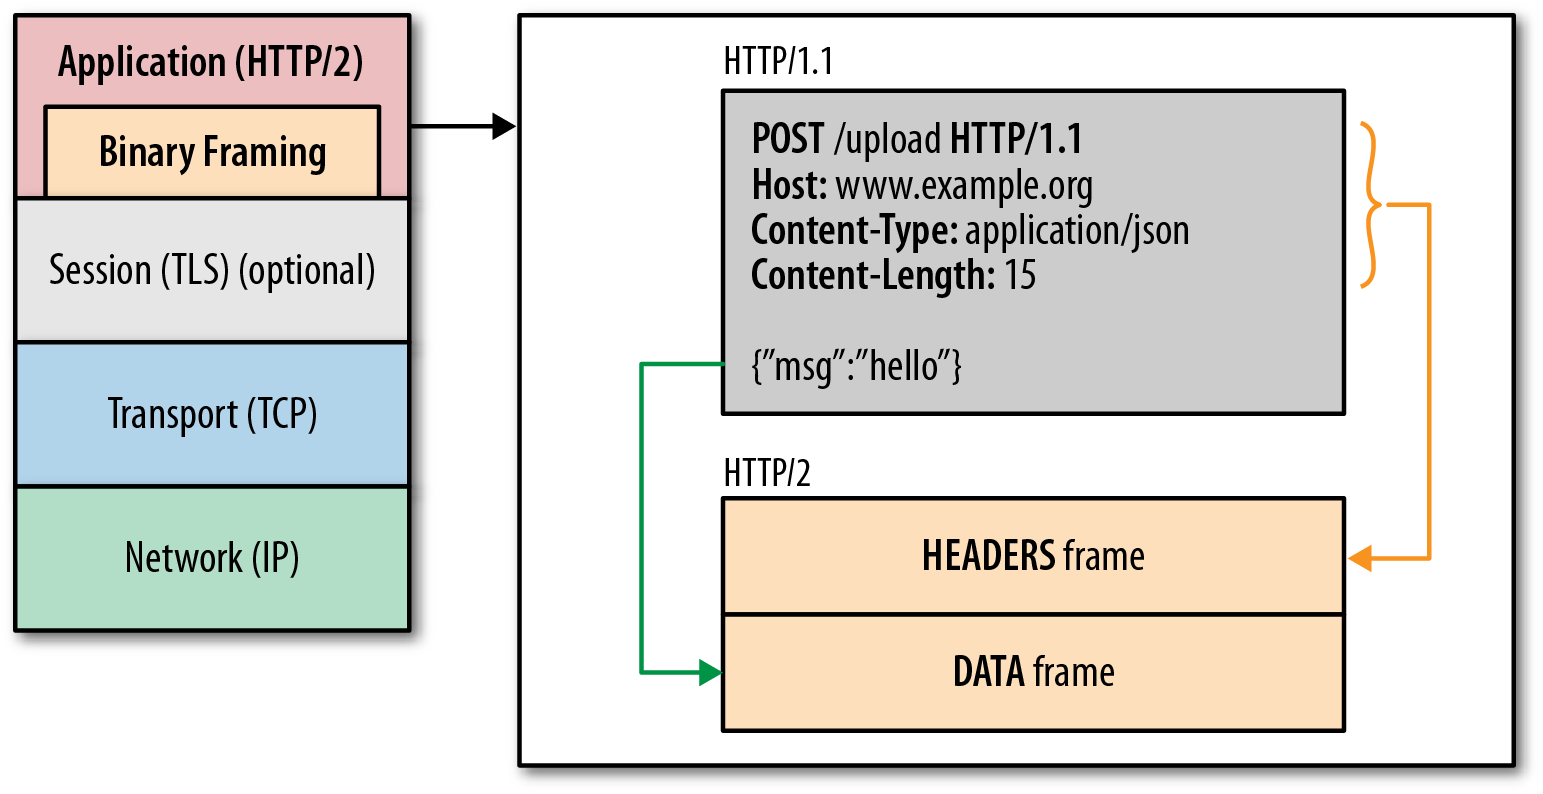 HTTP/2 binary framing layer